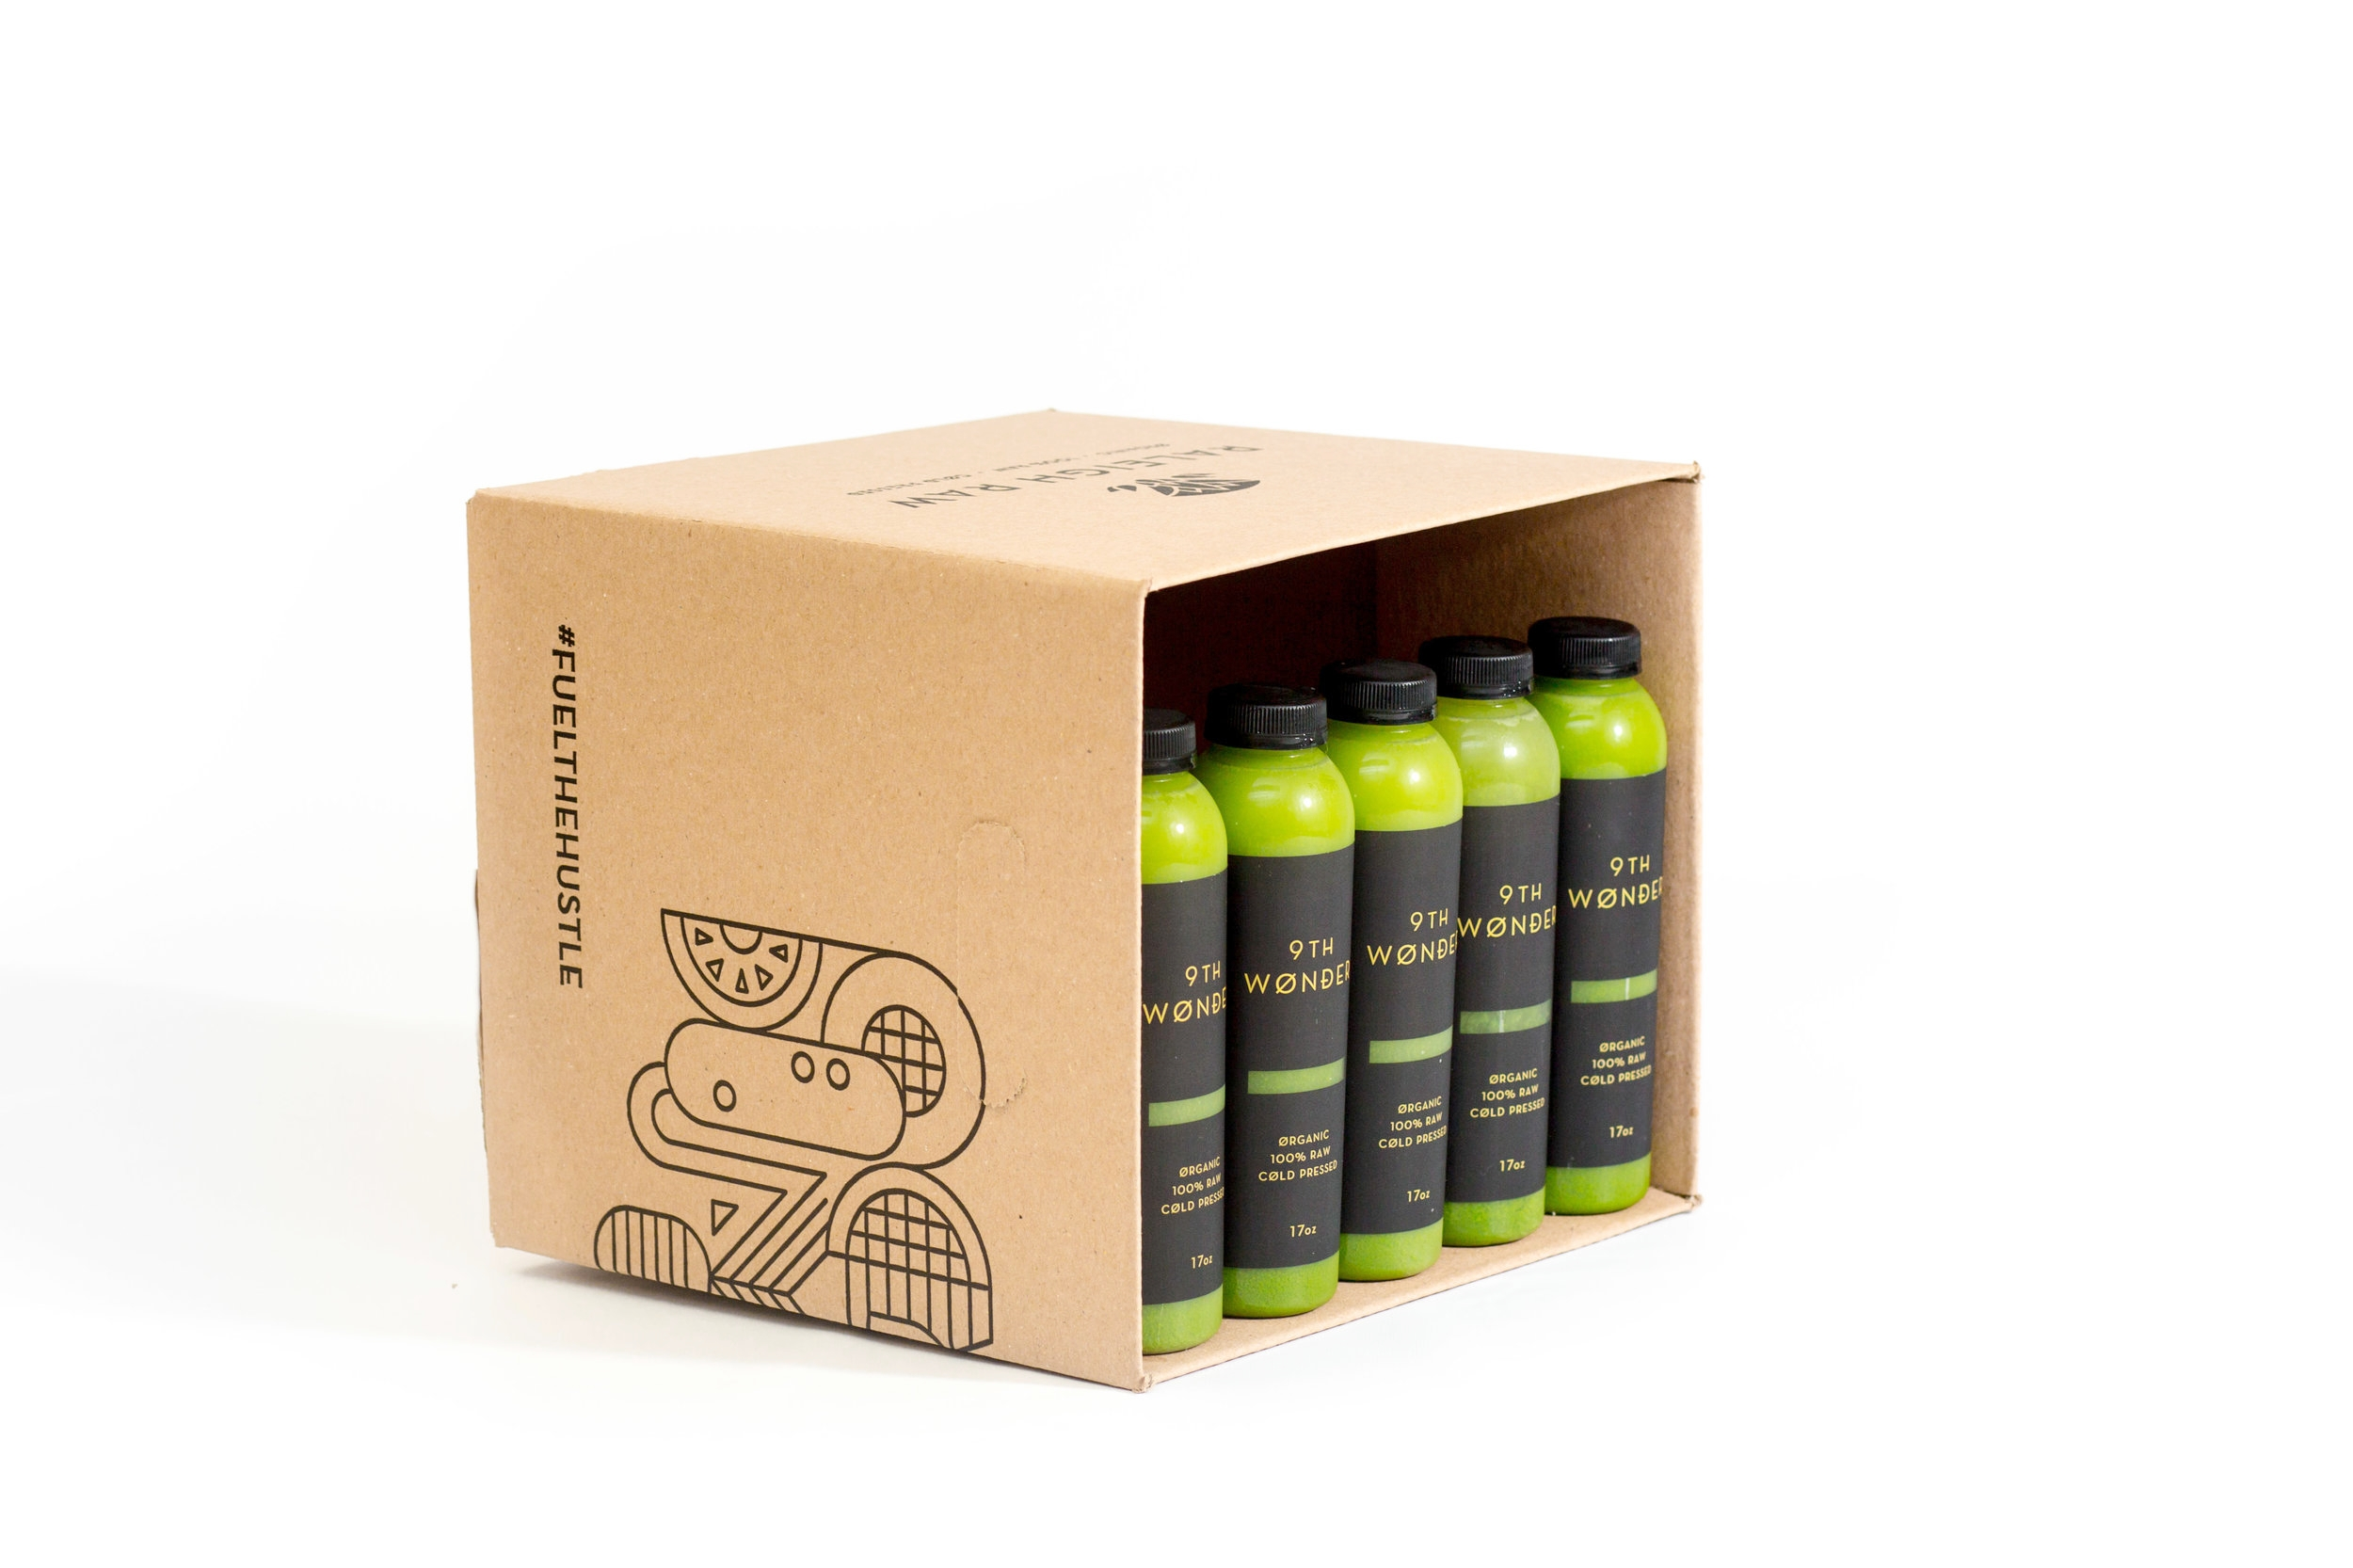 This is next level. For those who want zero fructose in their diet. 9th Wonder is bolstered only with lemon. Great for those avoiding even natural sugars. Ketogenic approved.  Use this as a once-a-week daily cleanse or drink the juices one per day to cleanse your dirty soul with pure vegetables!    Prices range from $25.05 - $77.50